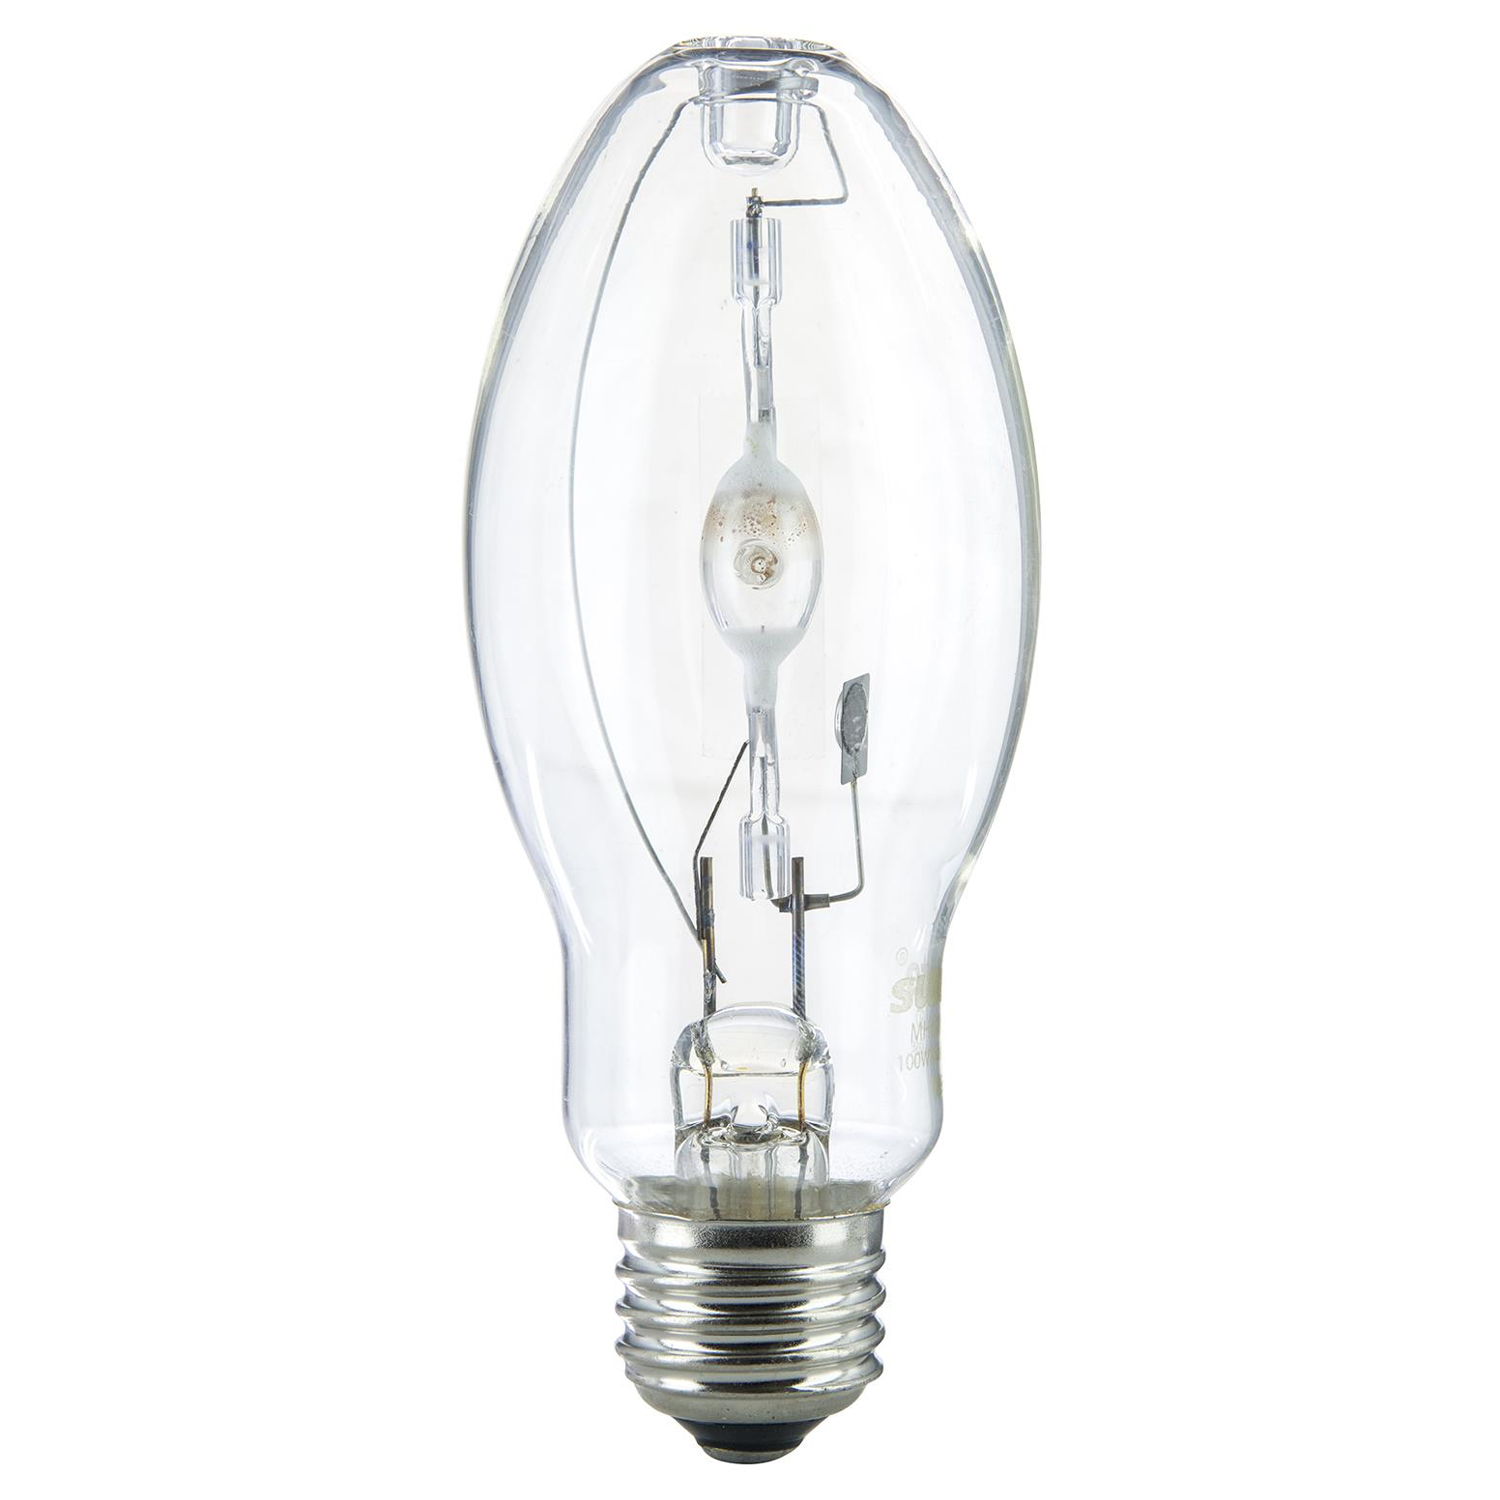 Sunlite 100w Ed17 K E26 Medium Base Mh100 U M Metal Halide Bulb